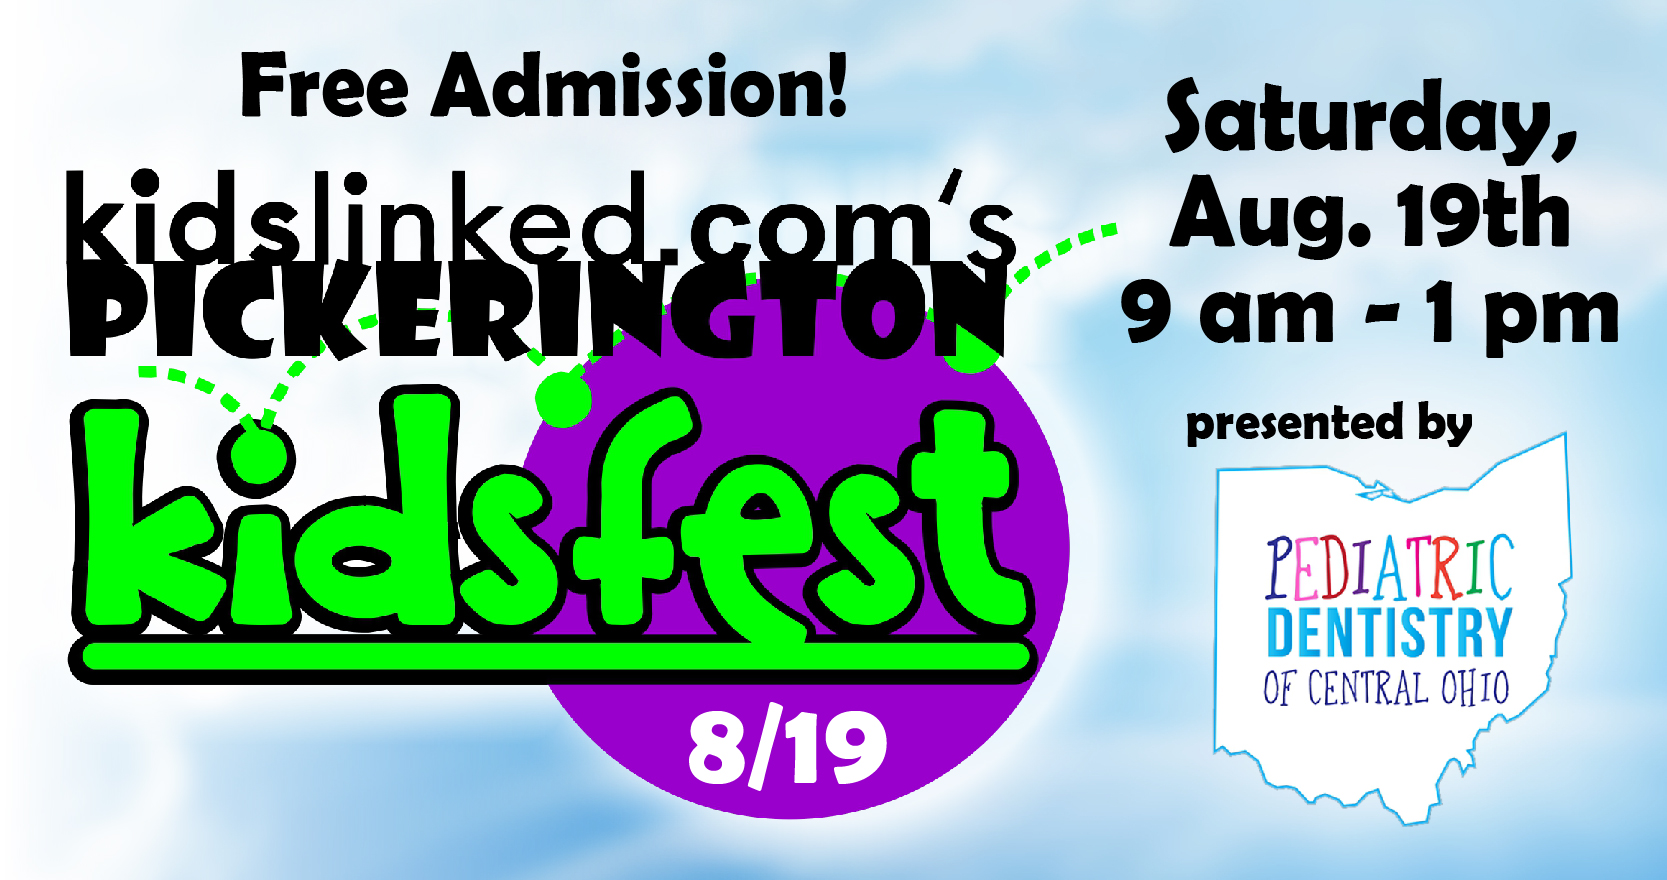 Pickerington Kidsfest 2017